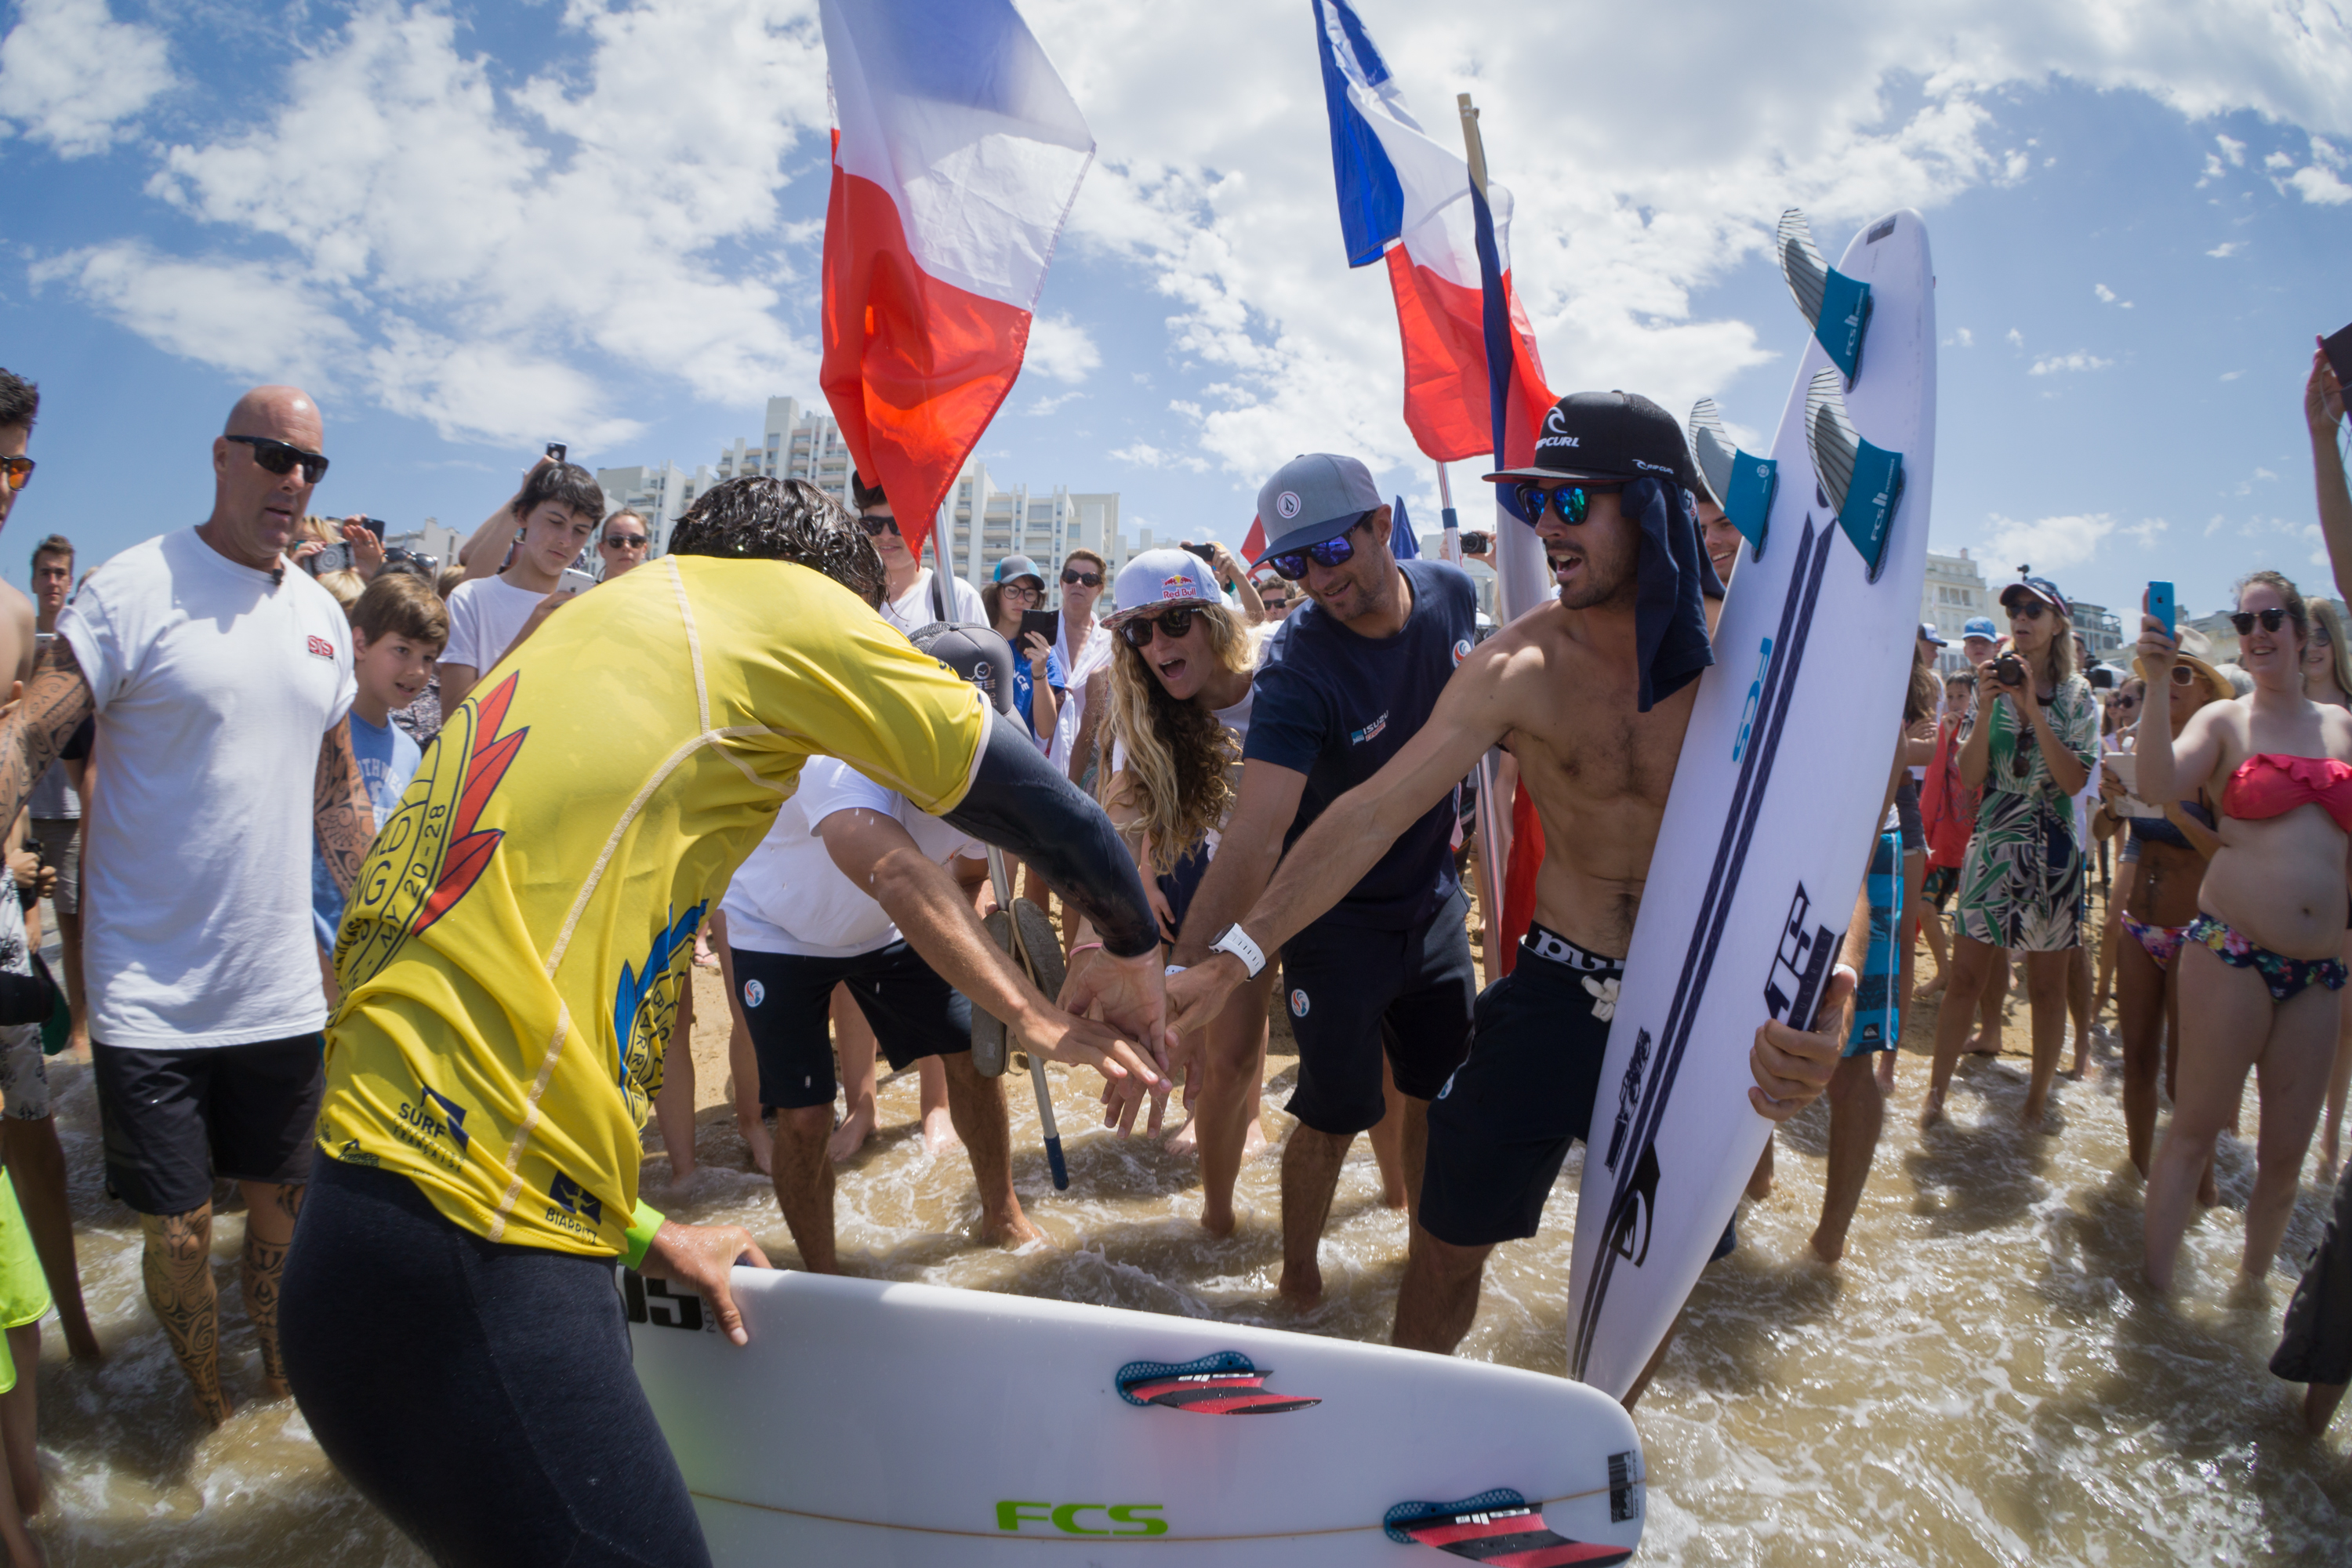 f18e10901d France Wins Historic First-Ever Team World Championship at 2017 ISA World  Surfing Games